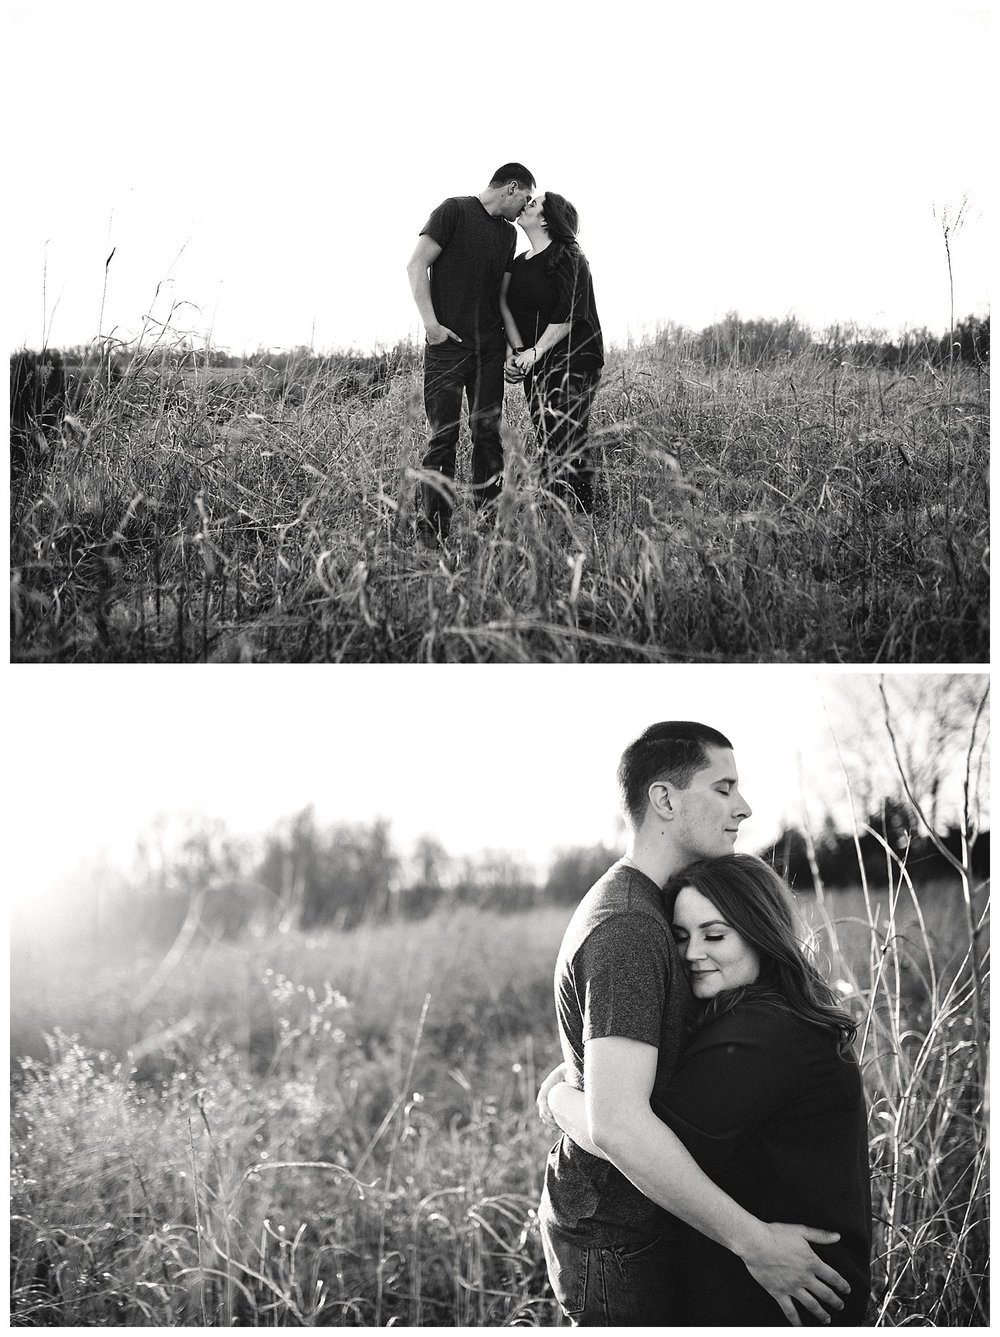 Kelsey_Diane_Photography_T-Bones_Stadium_Kansas_Wandering_Adventourus_Kansas_City_Engagement_0107.jpg